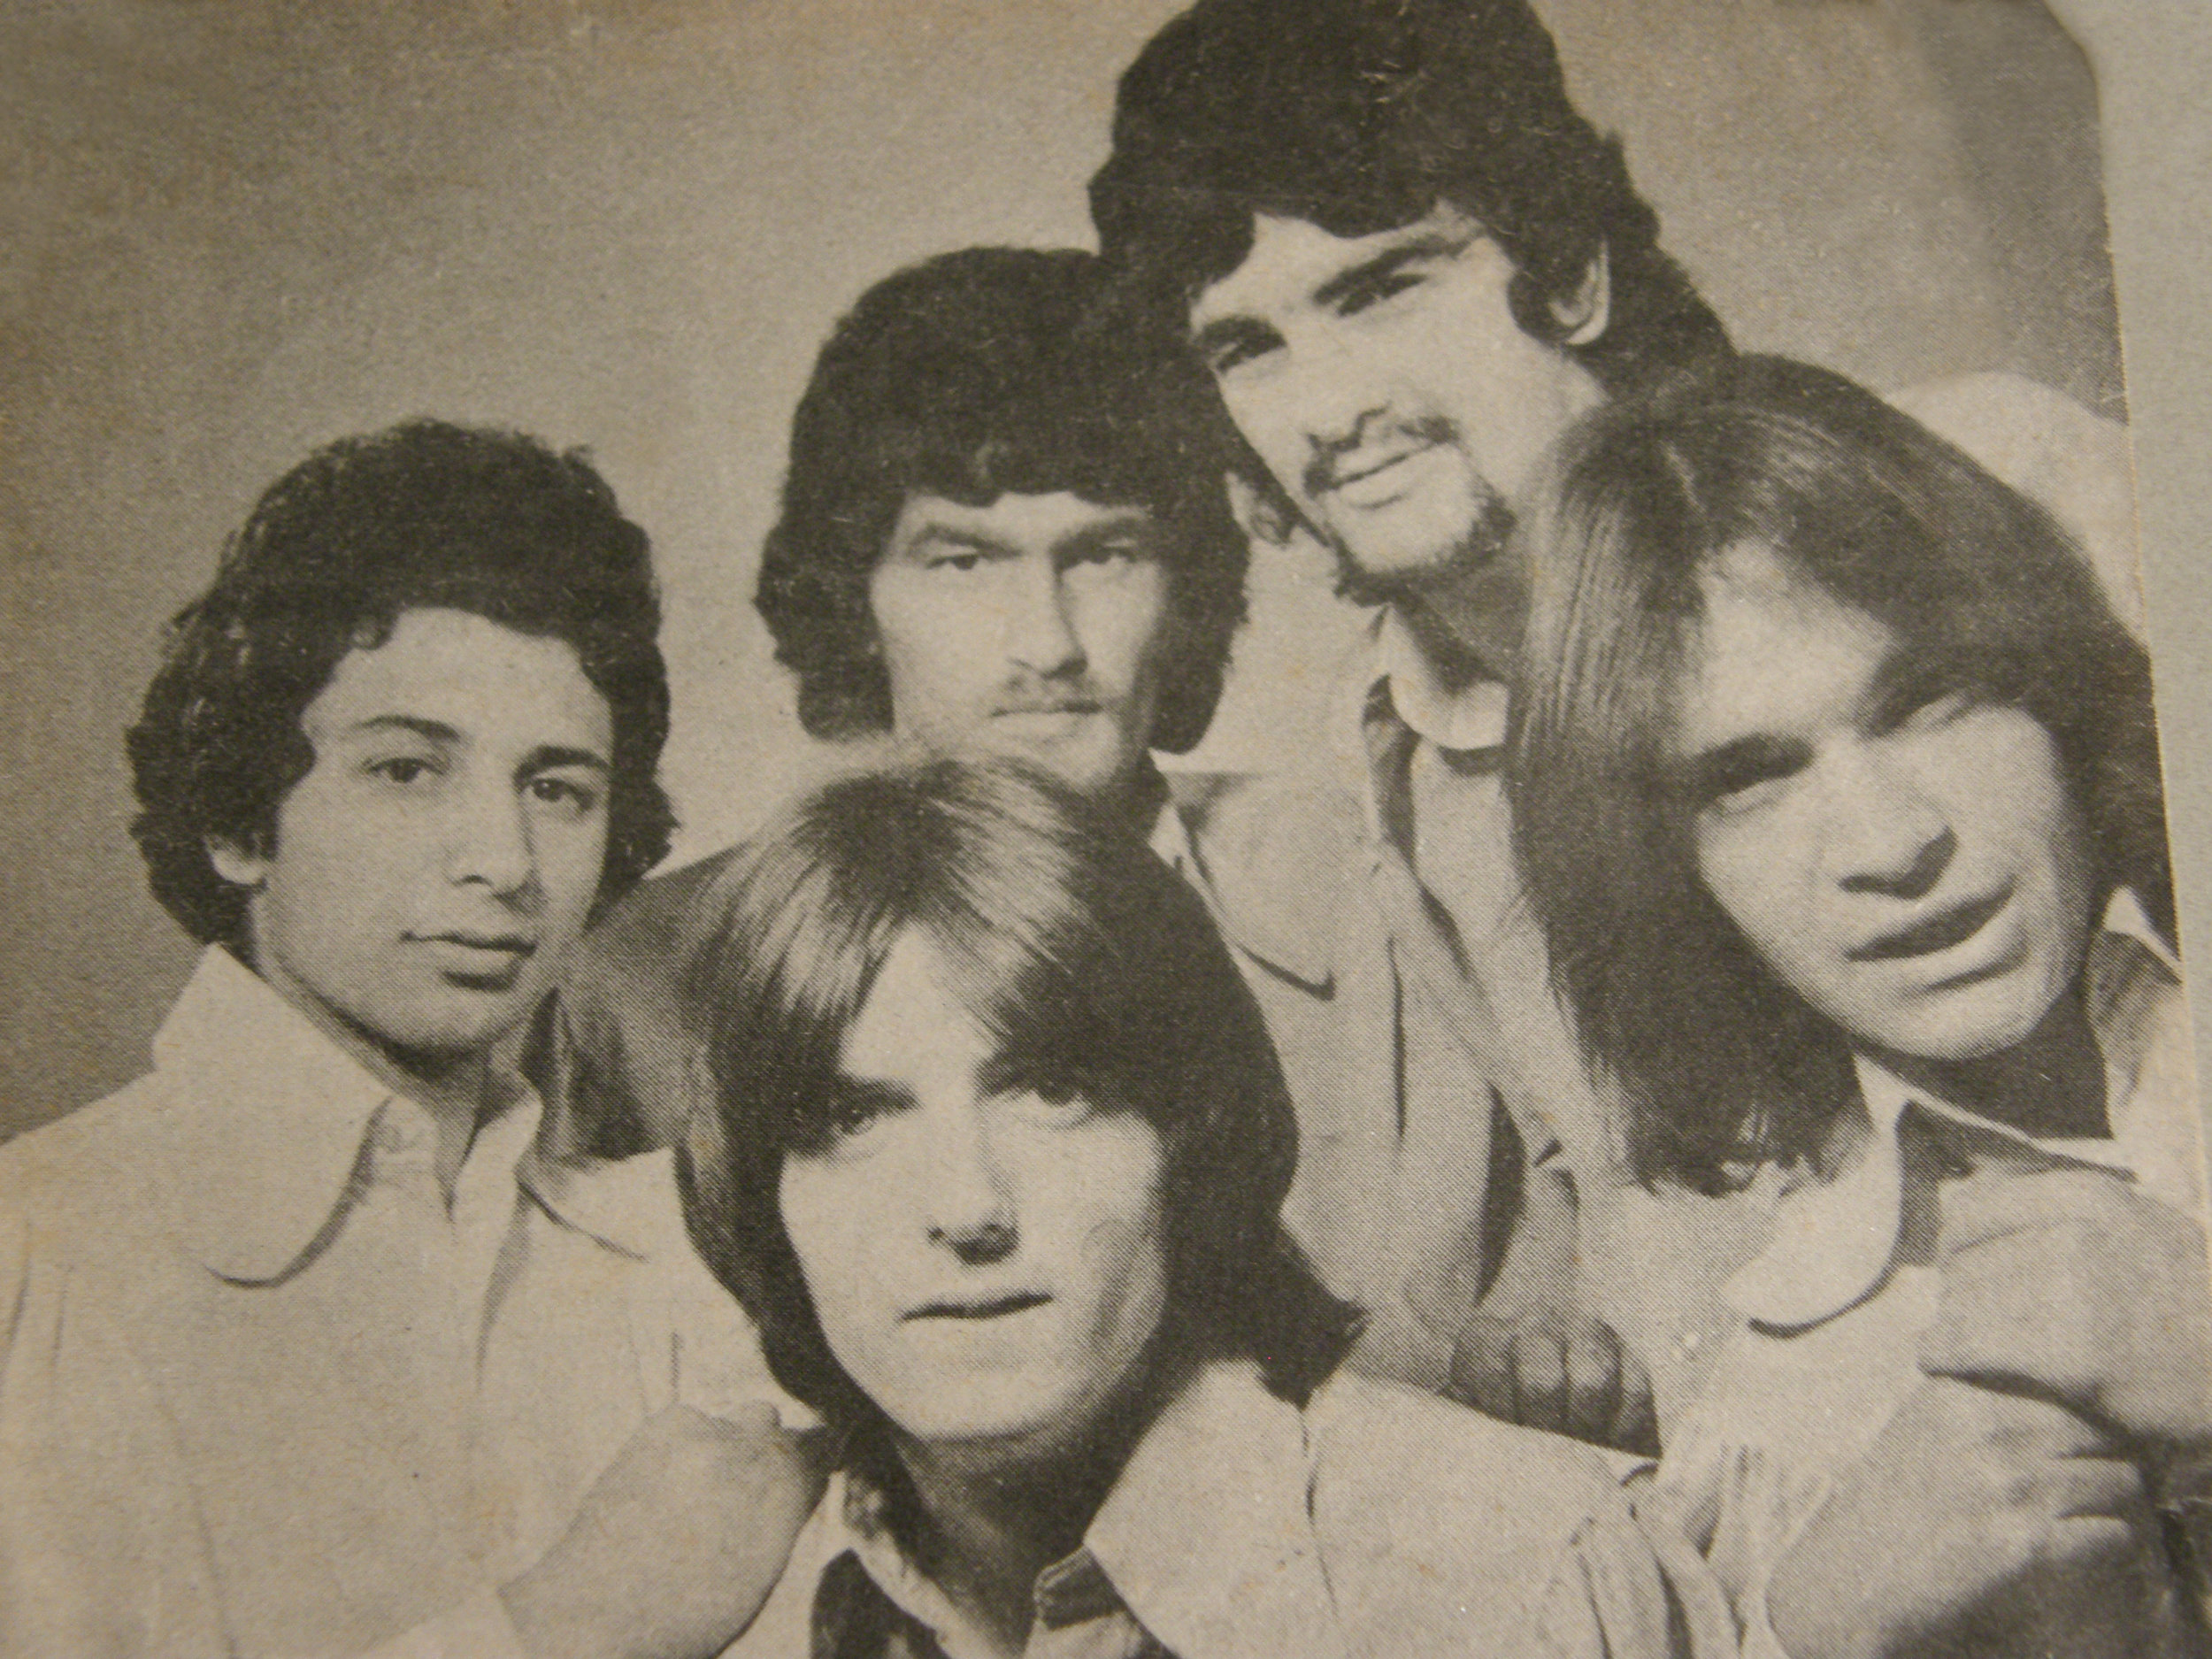 The Truth 1969 (from left) Jimmy Squadrito, Russell Bayne, Bob Lounder, Barry Dean, George Kent.